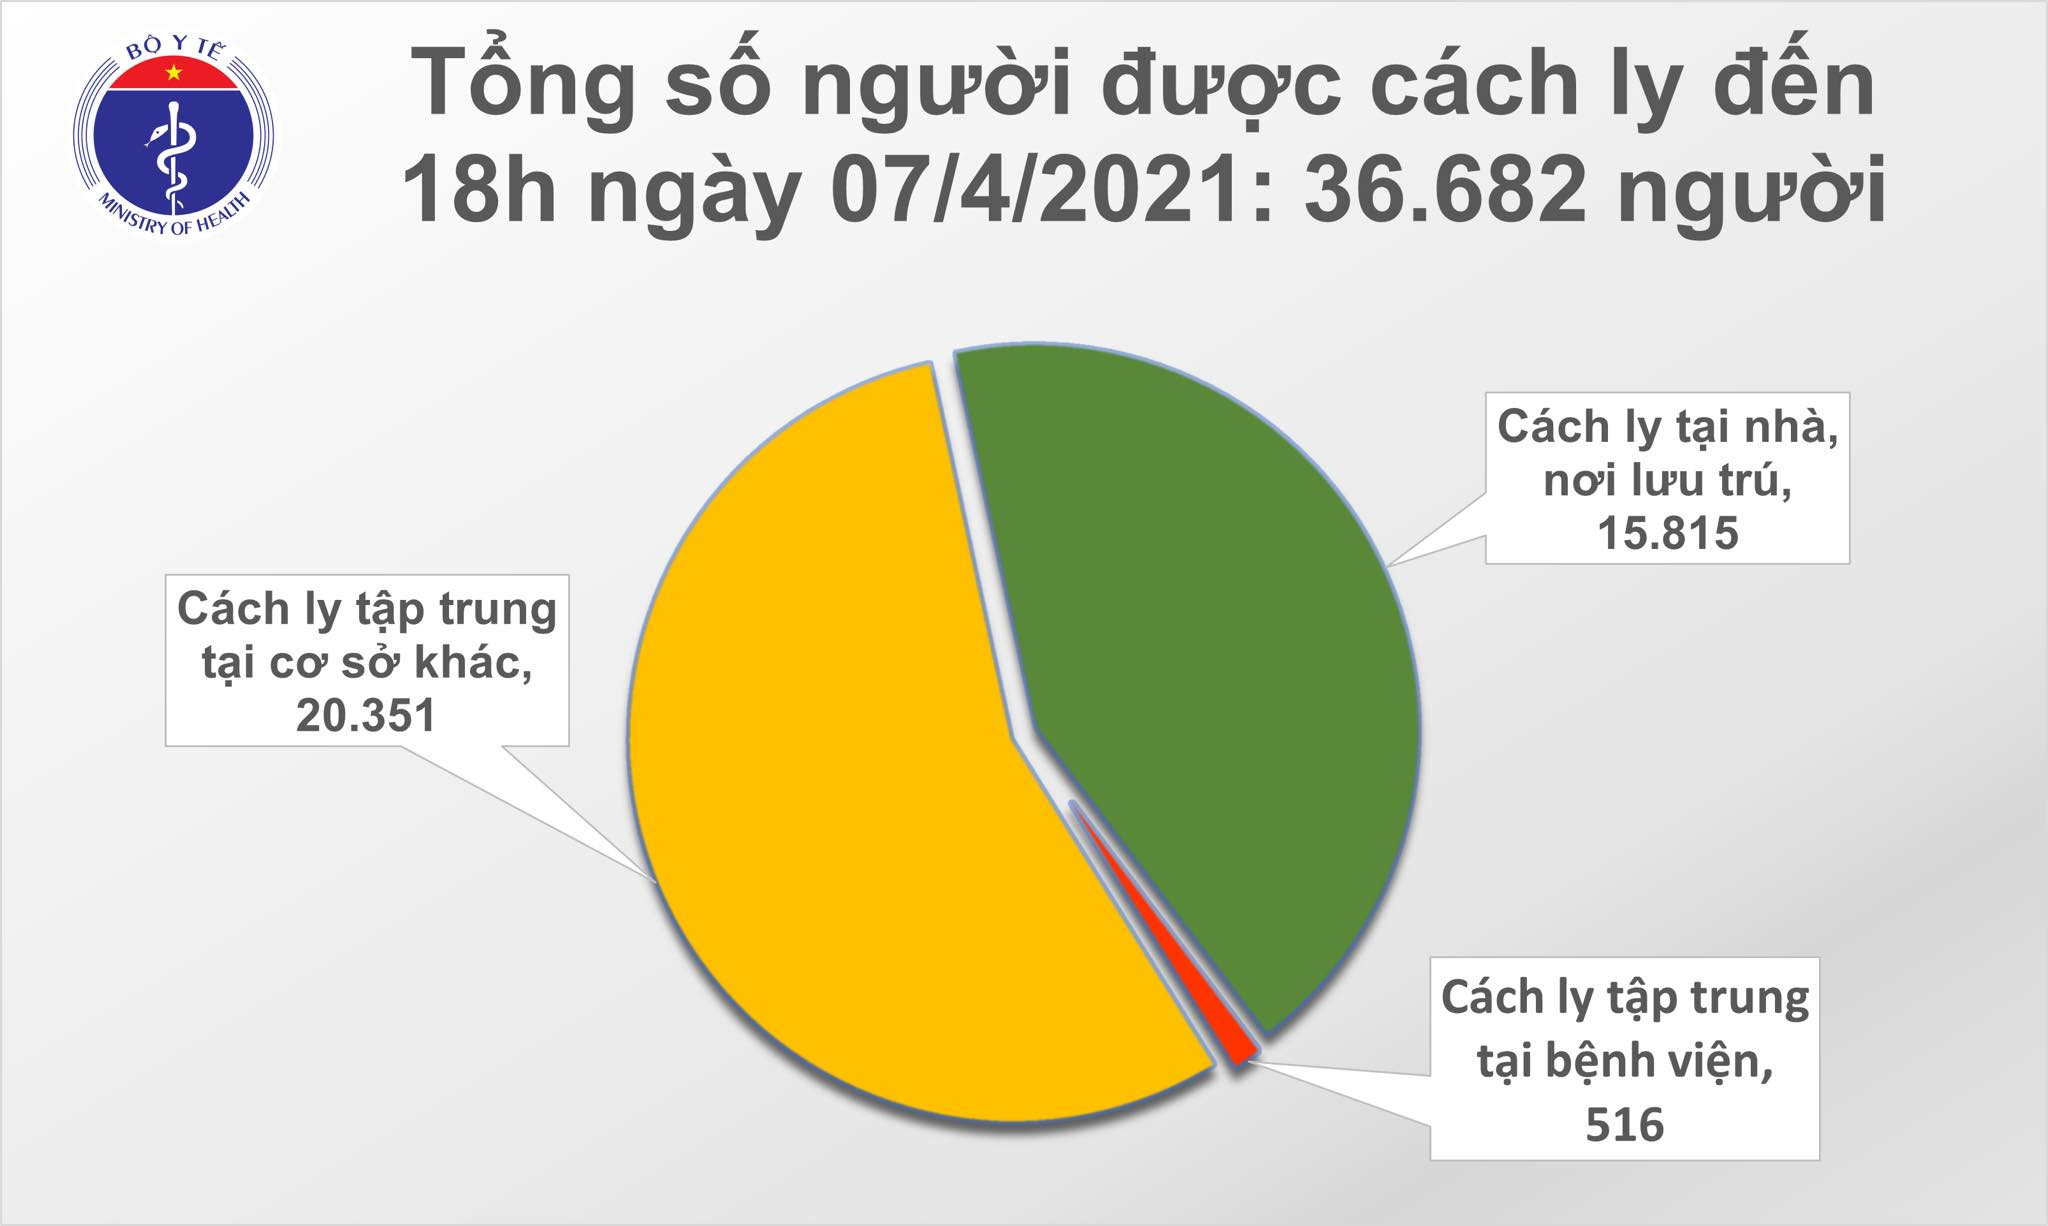 Ho Chi Minh City and 4 localities recorded an additional 11 cases of Covid-19 - Photo 2.